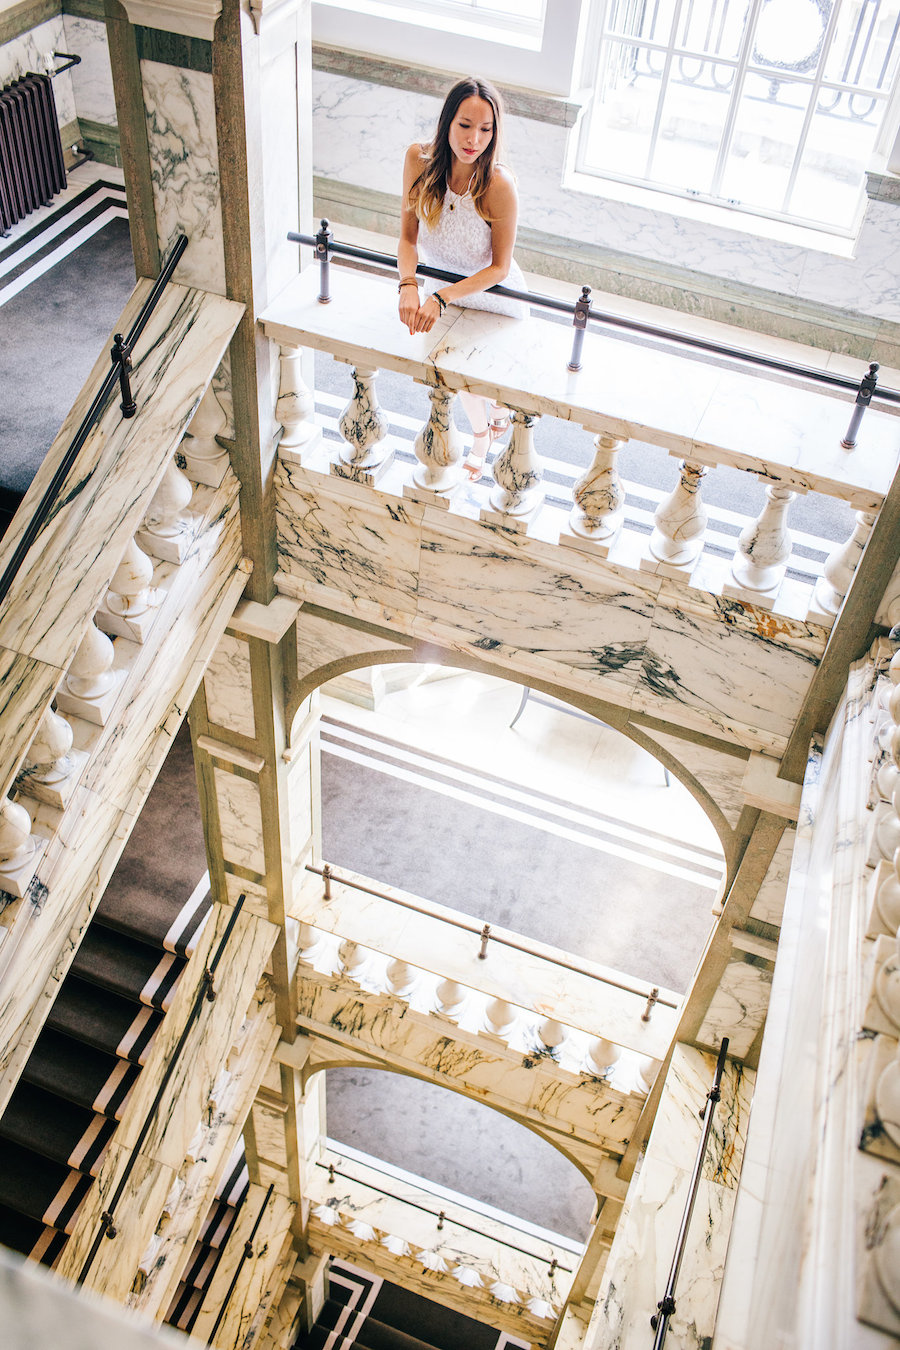 The Rosewood London hotel, marble staircase photoshoot